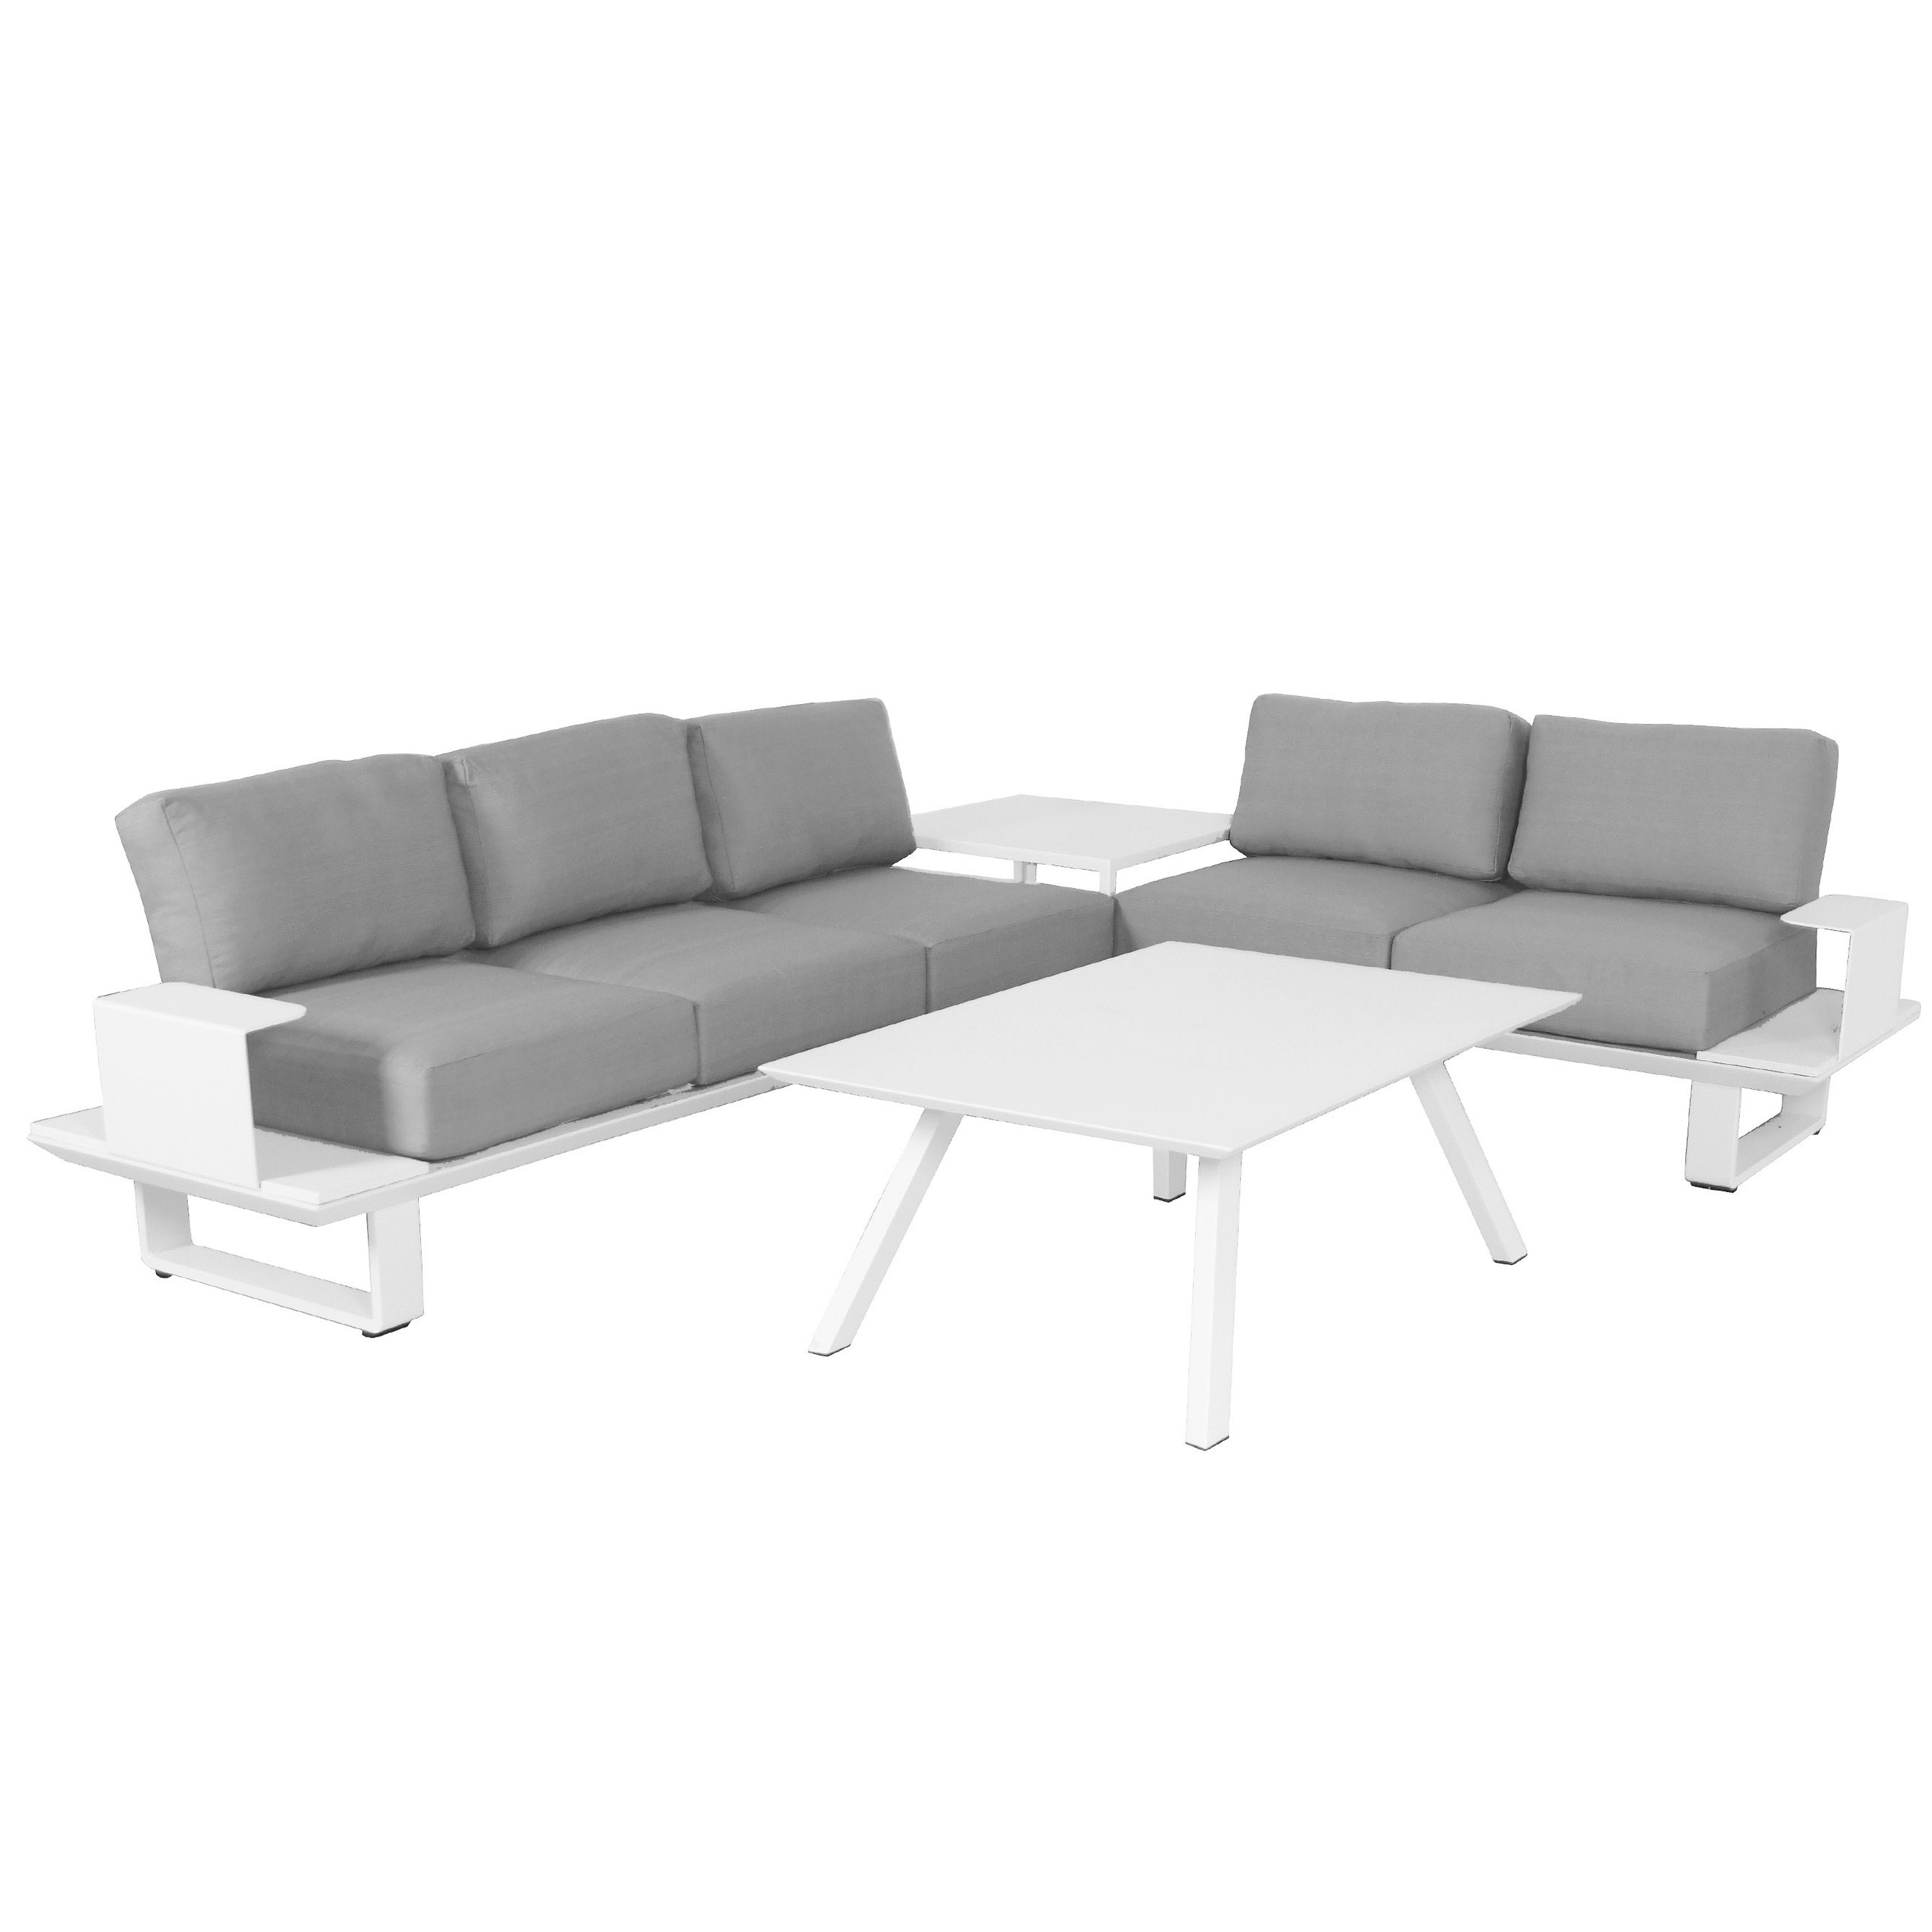 Adeline 3 Piece Sectionals With Regard To Popular Sunset 3 Piece Sectional – Free Shipping Today – Overstock – 21526291 (Gallery 10 of 20)